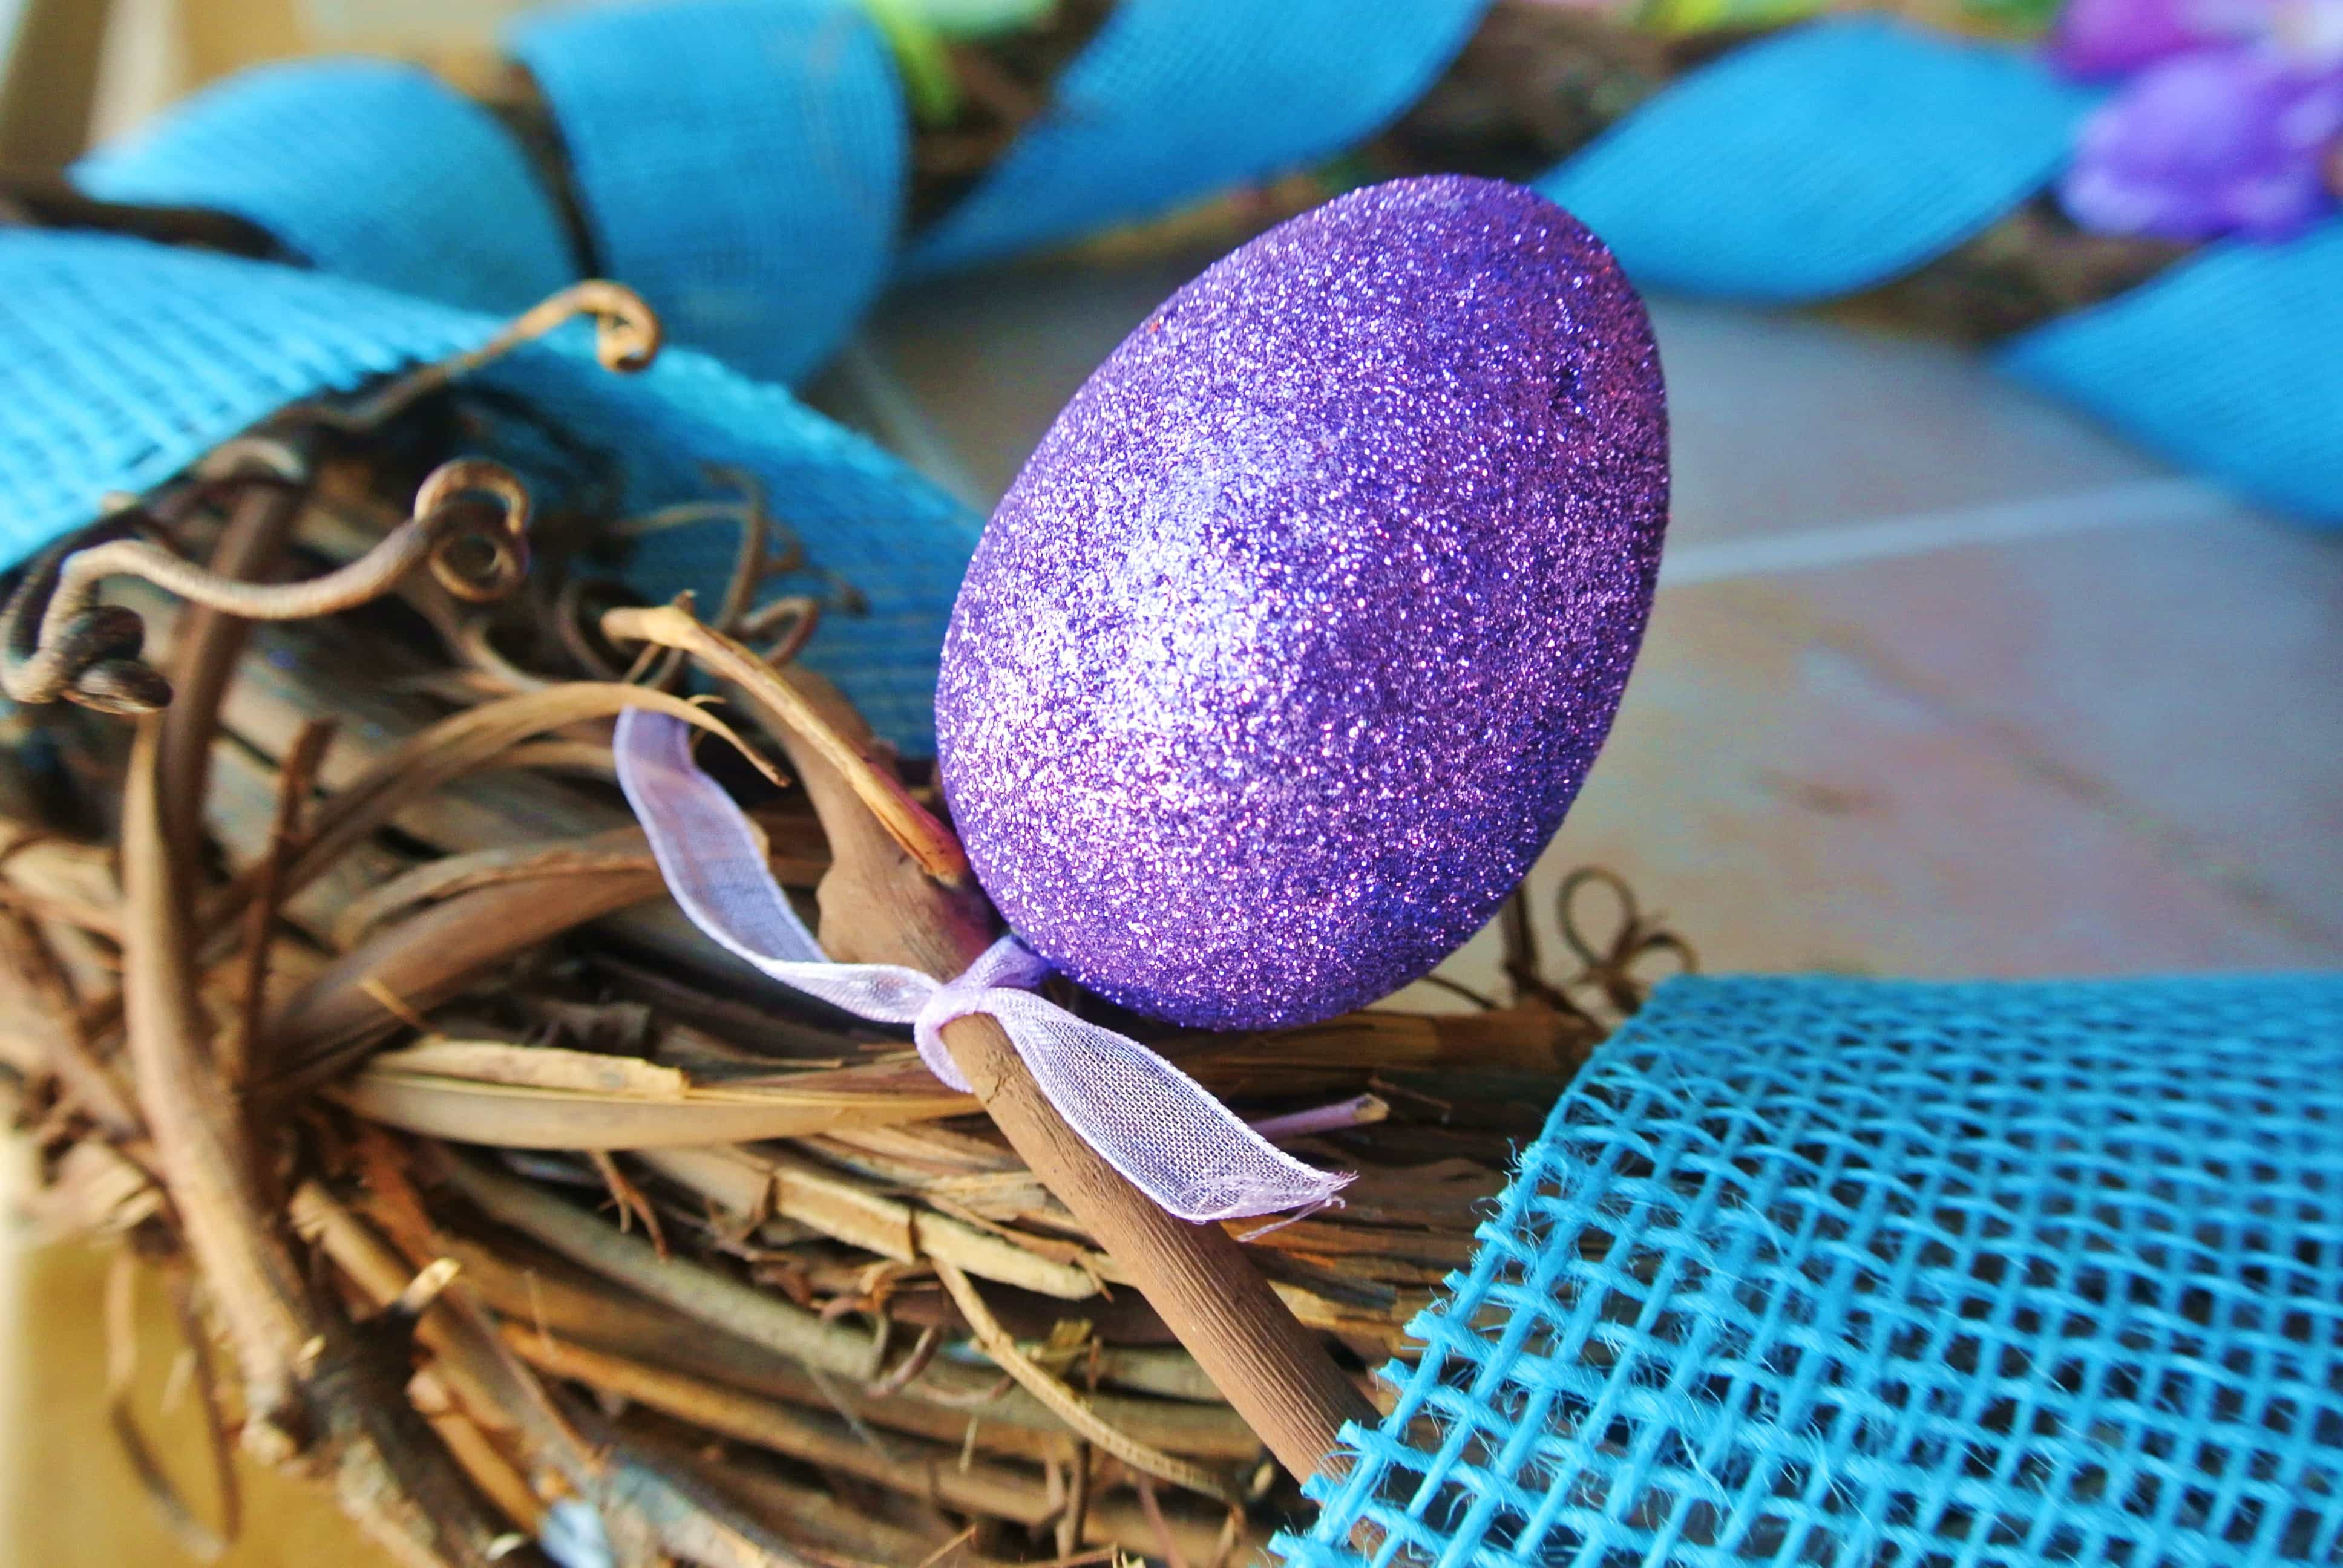 Tie eggs to grape vines in a clusters of three Placed a few inches apart in between gaps of burlap ribbon.